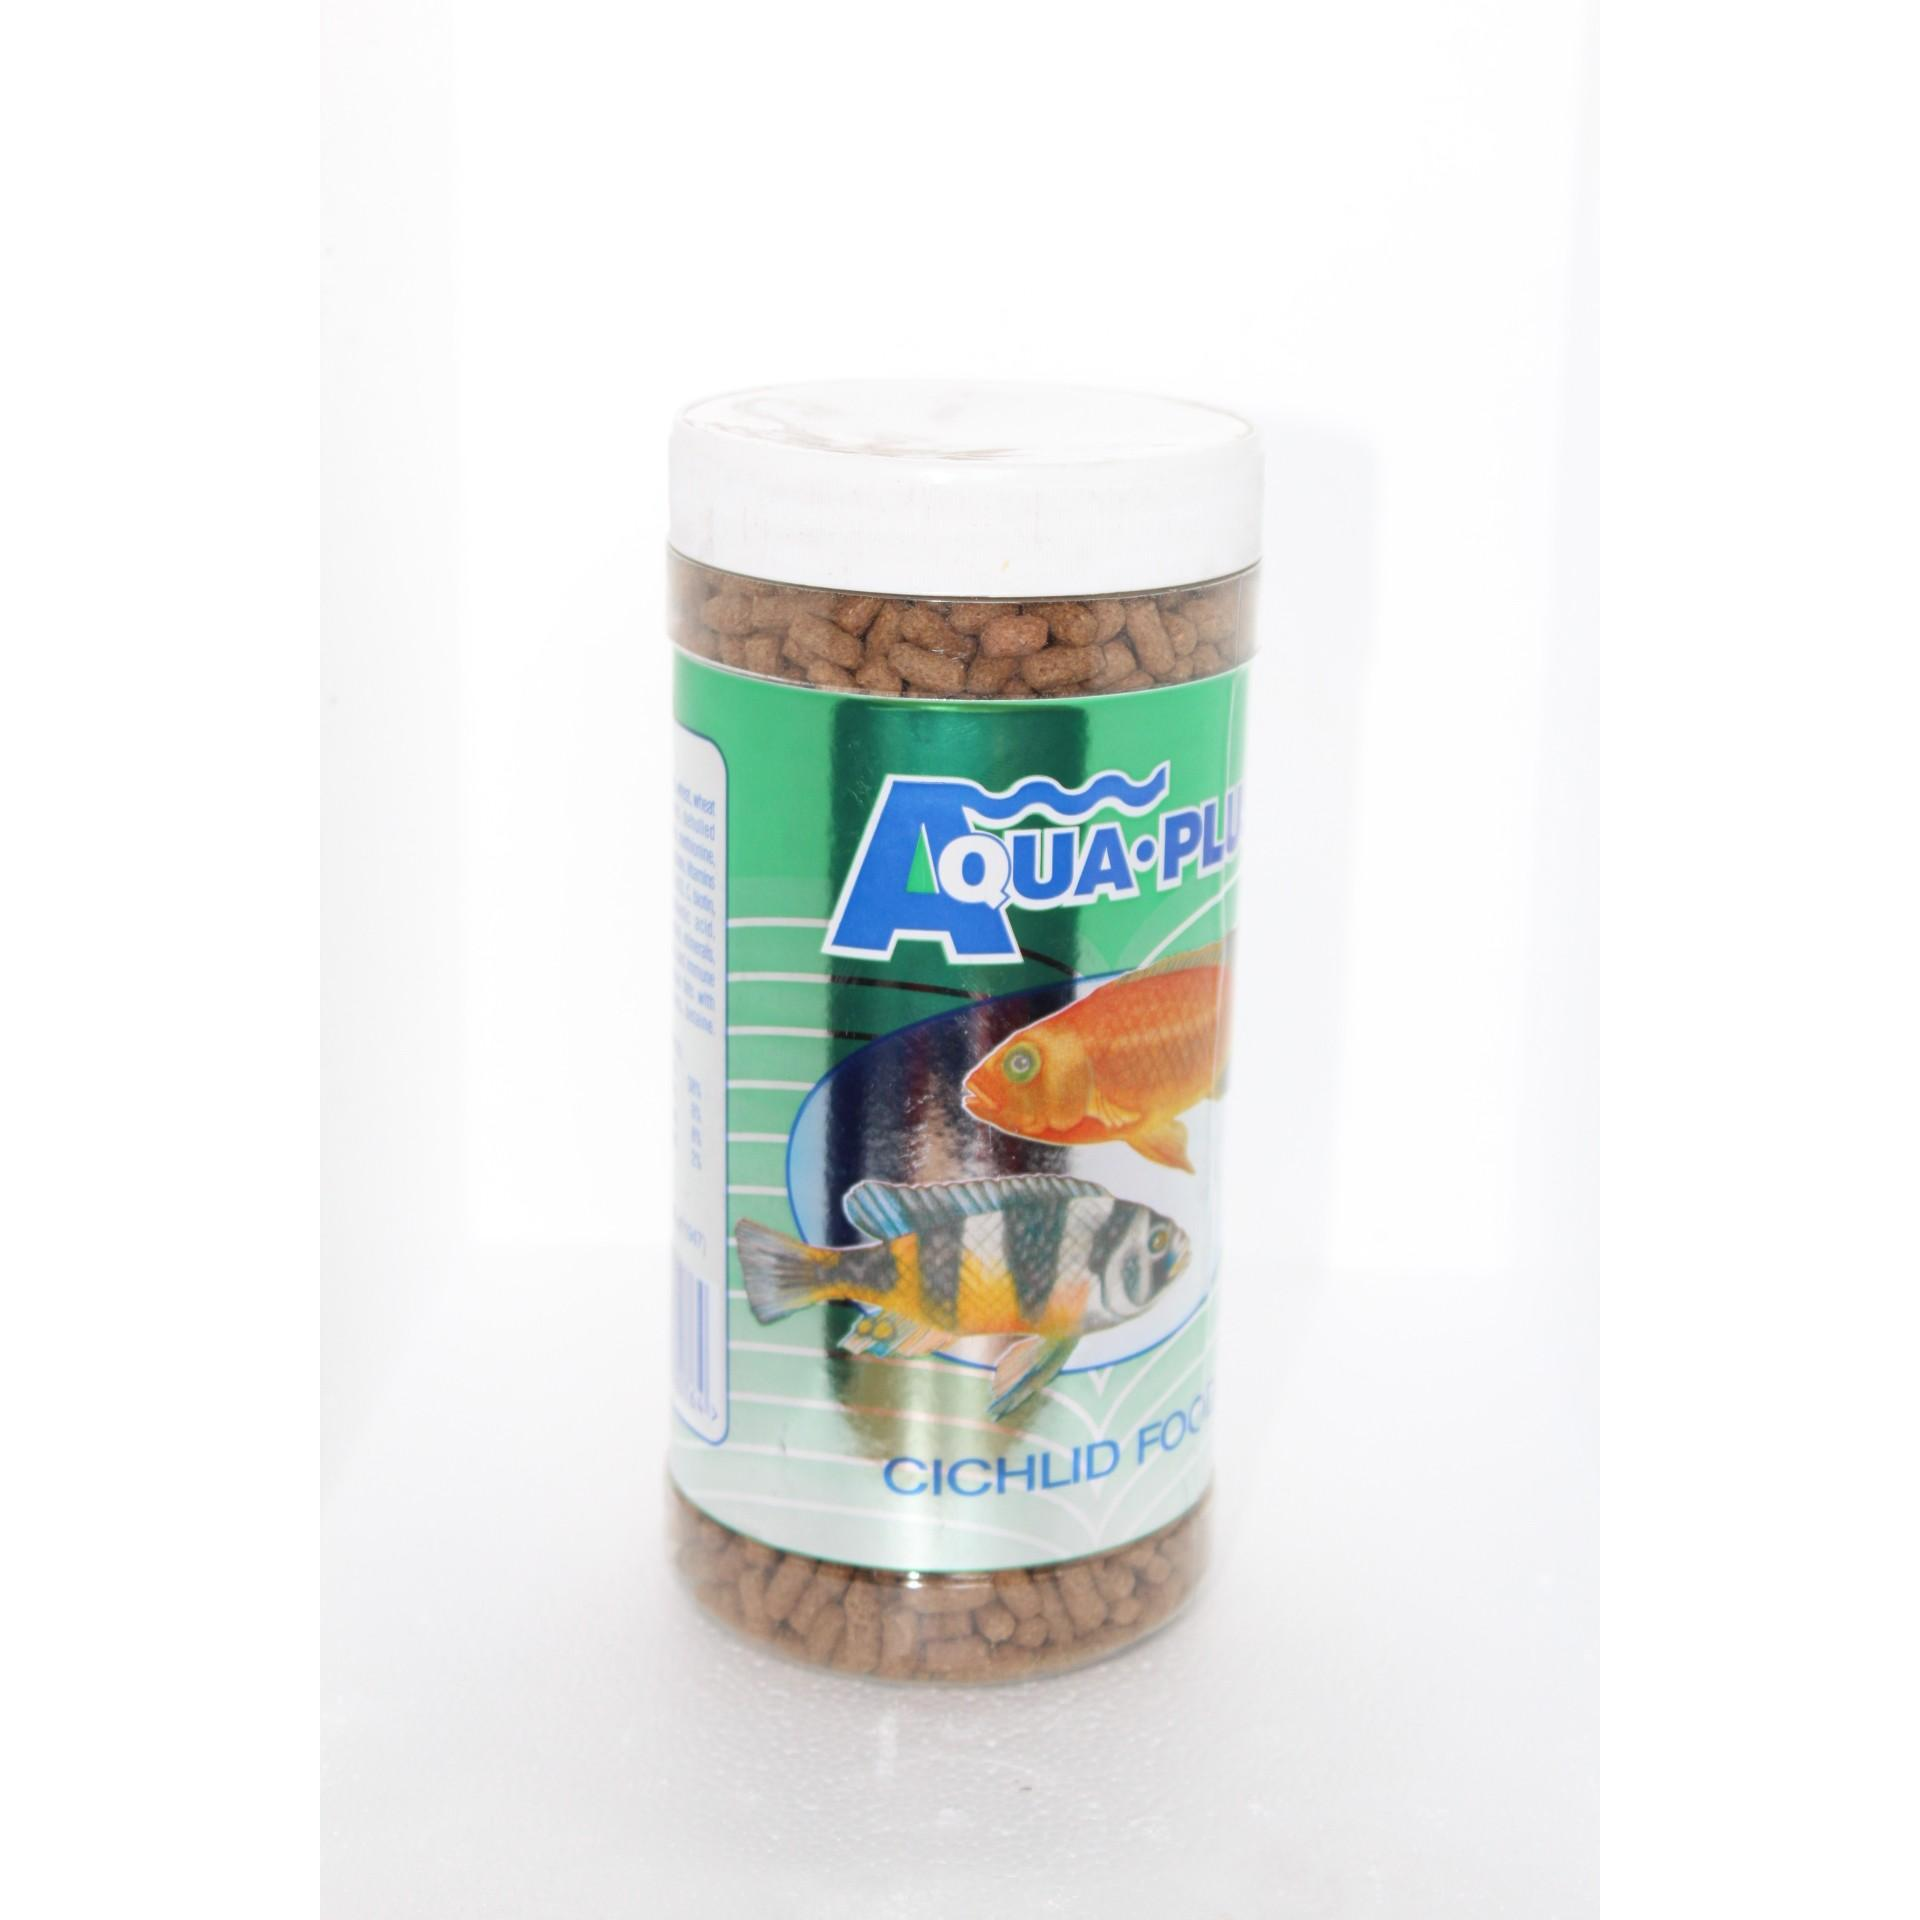 Cichlid Food (Sticks) 450g